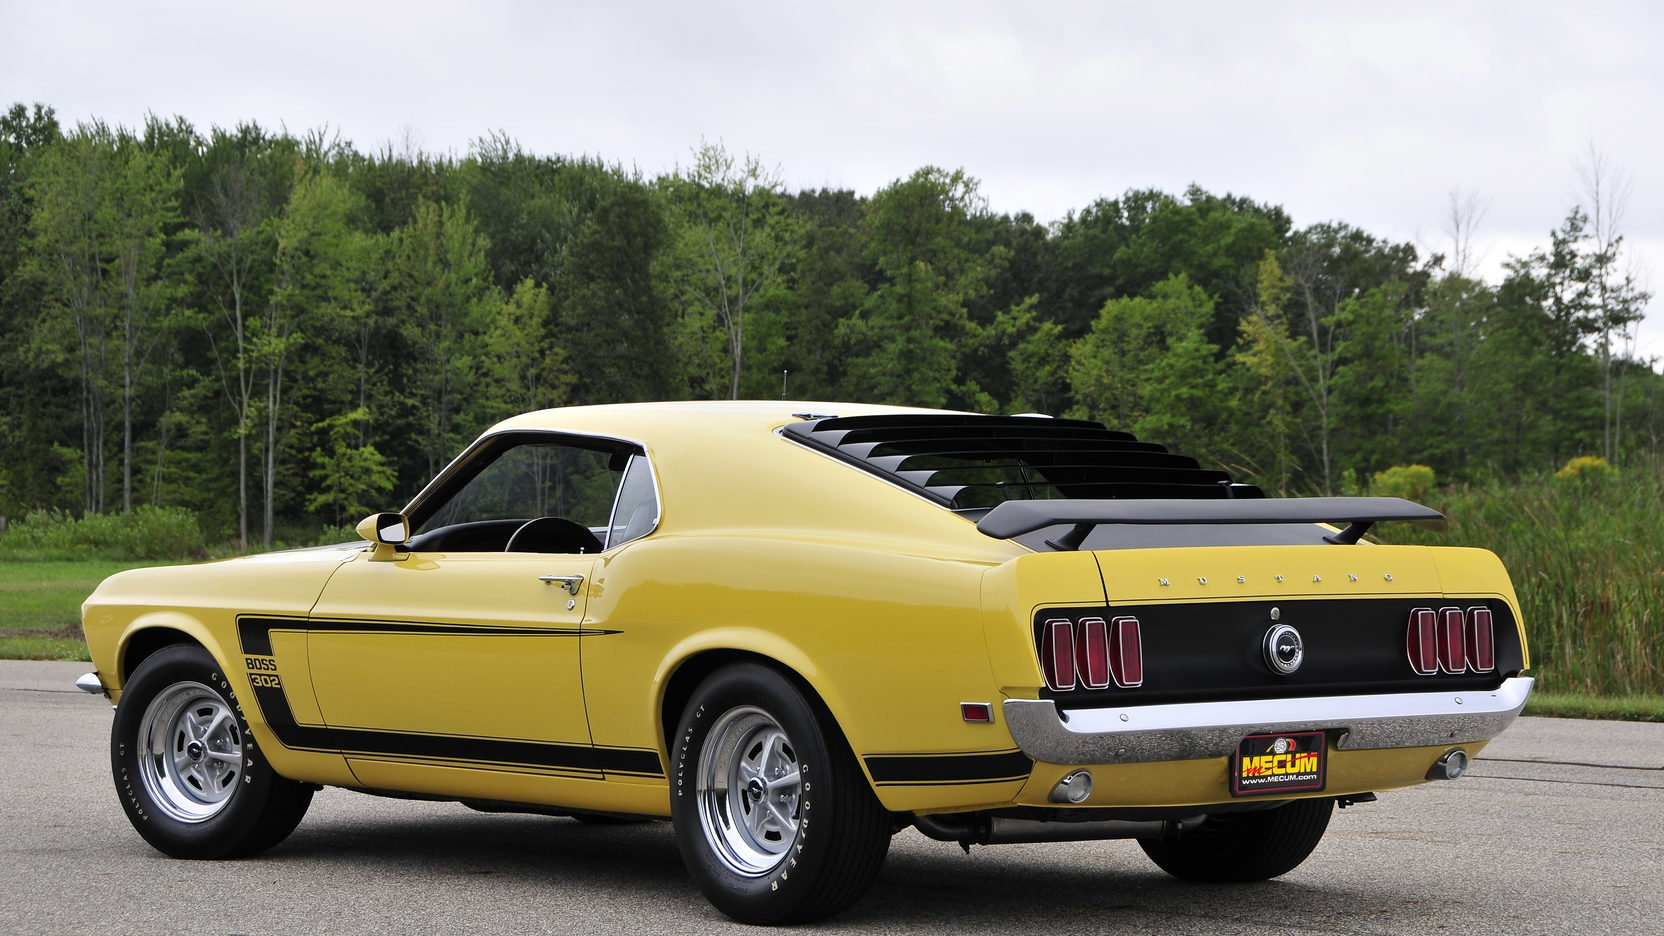 One of my favorite Mustangs the 1969 Boss 302! #boss #302 #mustang #ford #madmusclegarage https://t.co/nejeznuBiT https://t.co/AymqQ3inYd